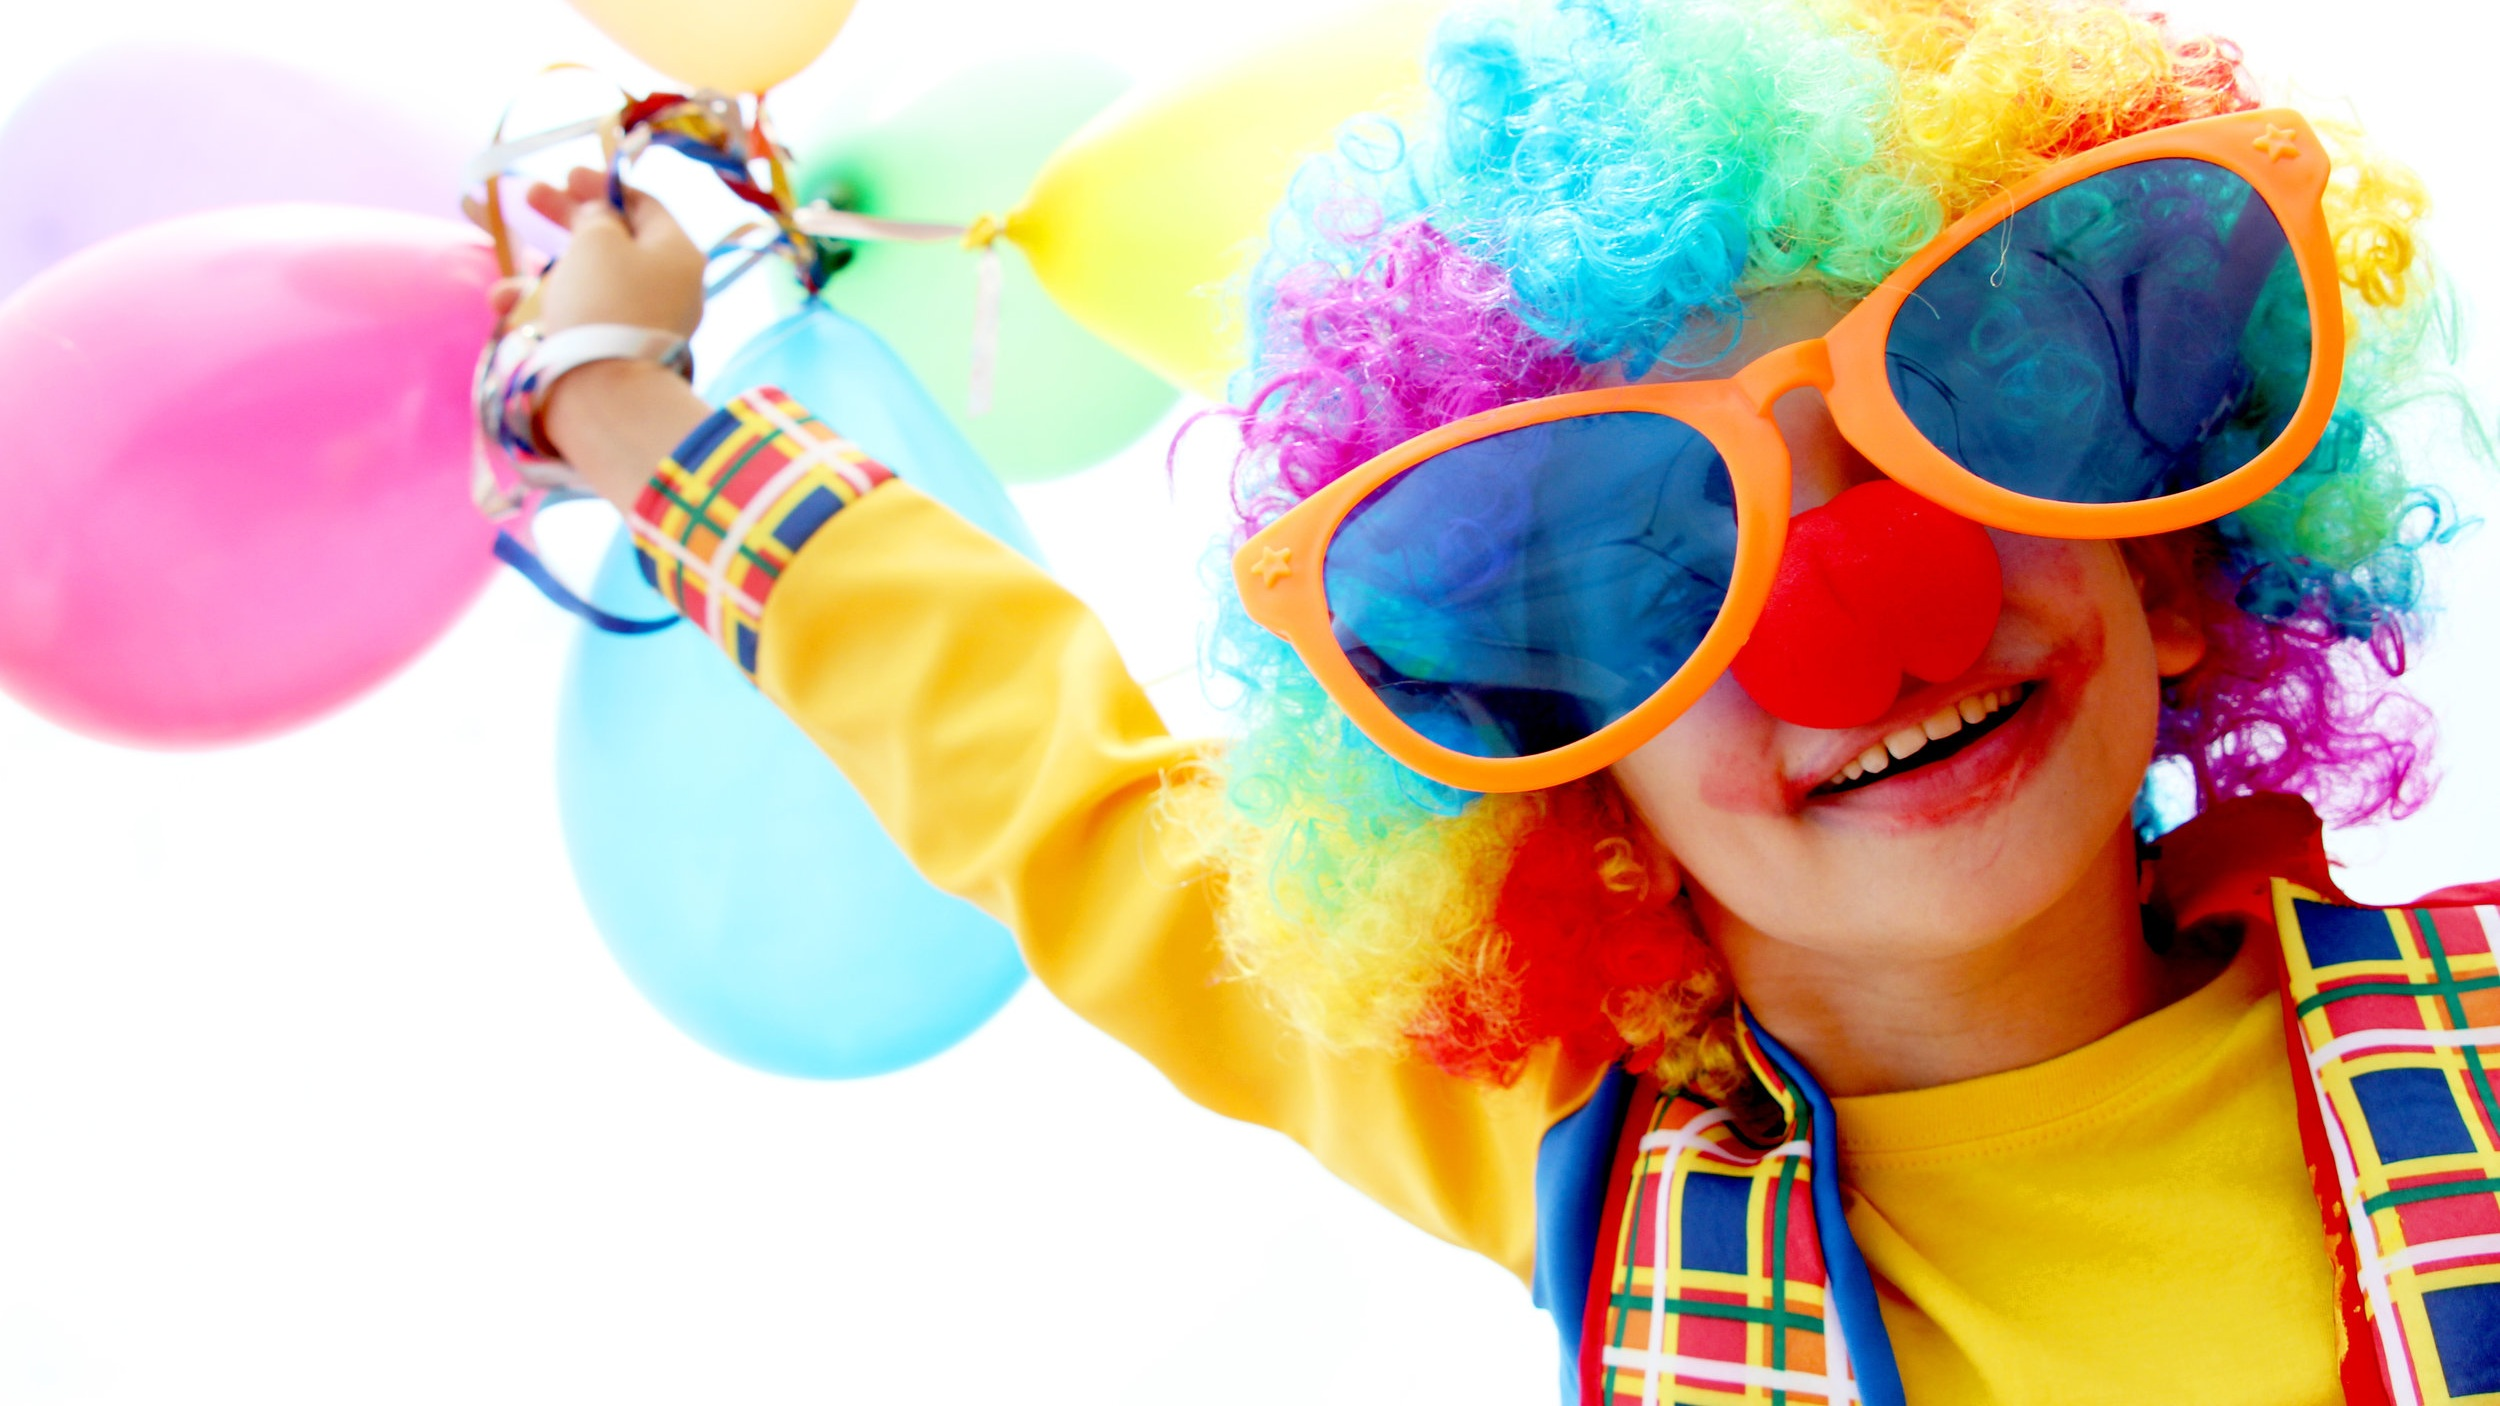 CIRCUS WEEK - JULY 8 - JULY 11HALF DAY CAMPPre-K & Kids Camps